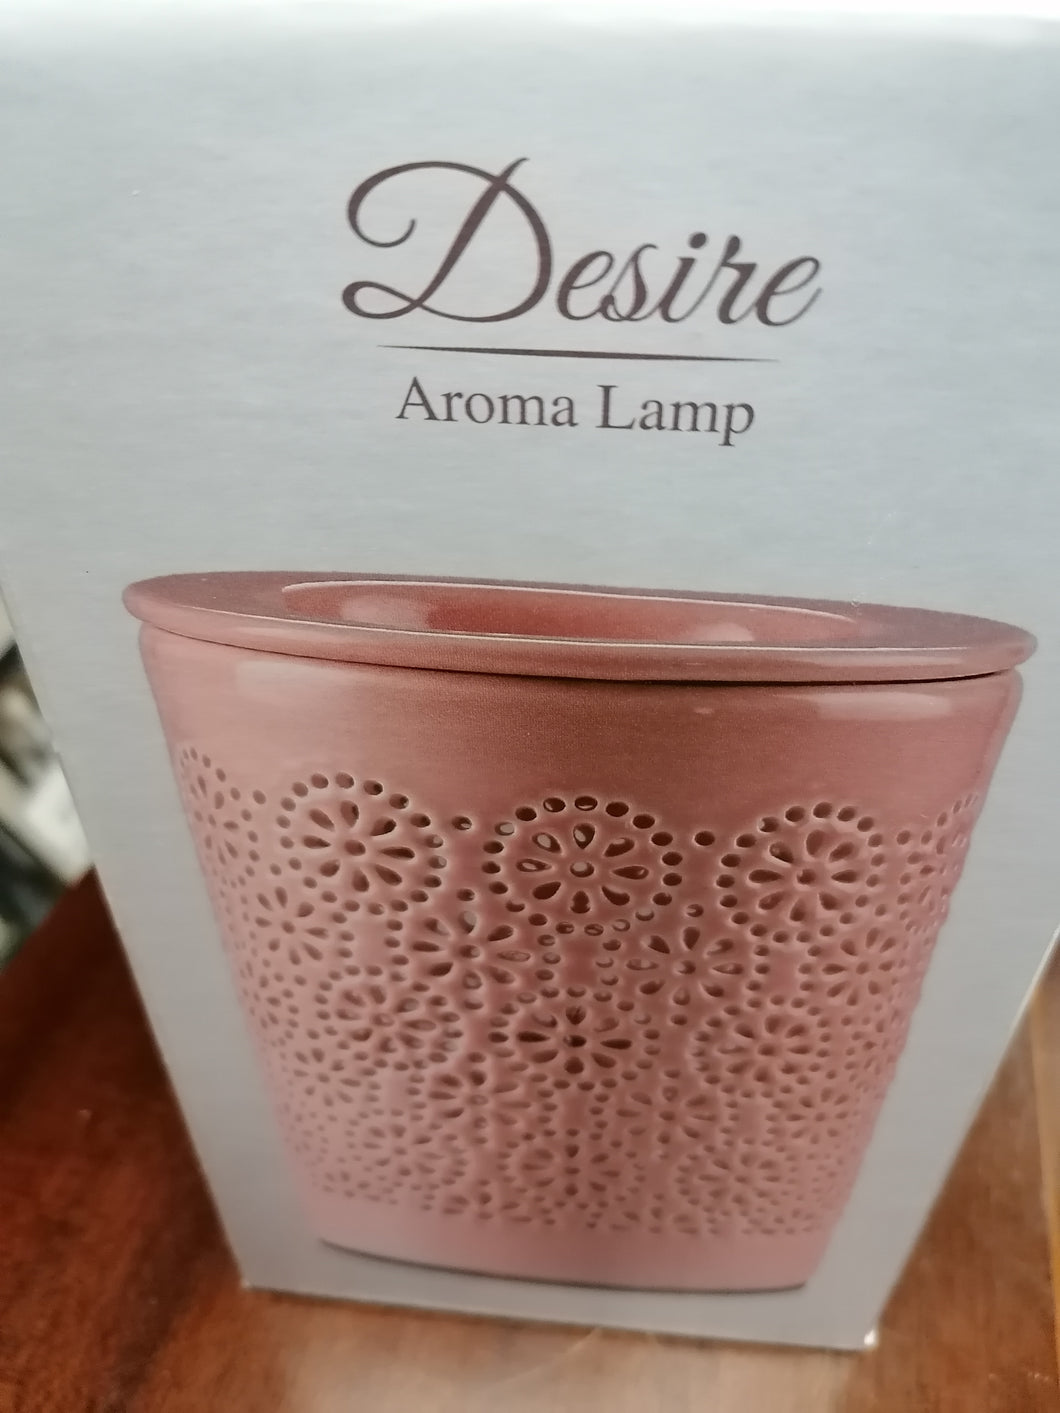 Desire Electric Aroma Lamp - Retro Treasure Leeds